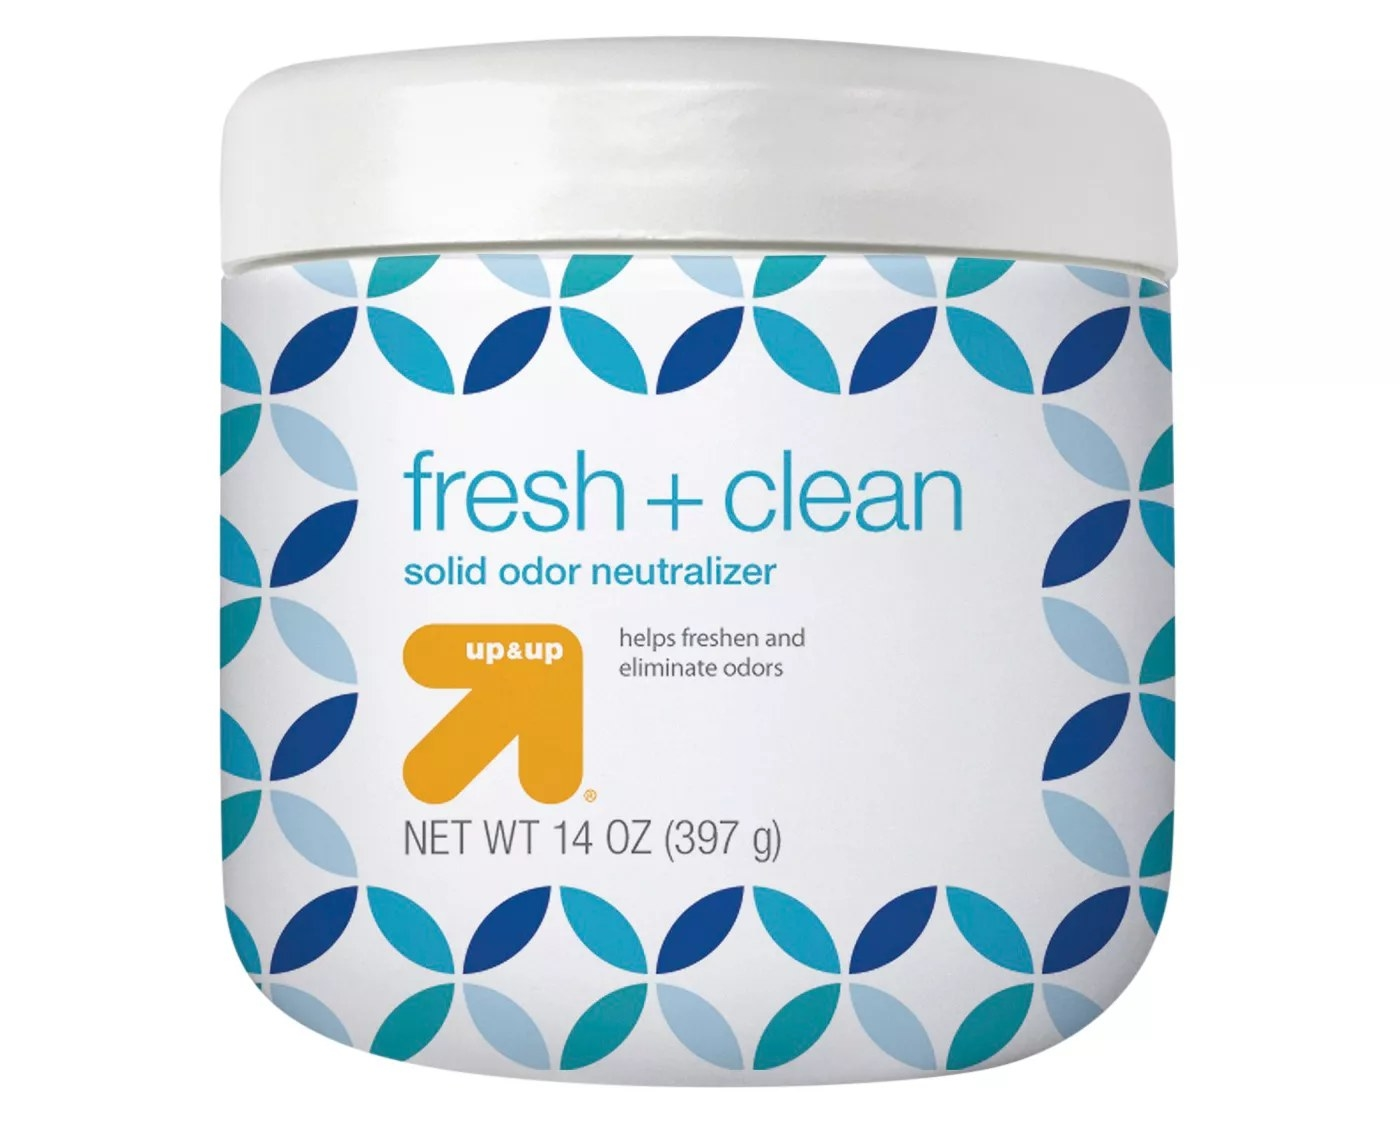 A 14-ounce container of solid odor neutralizer that freshens and eliminates odors